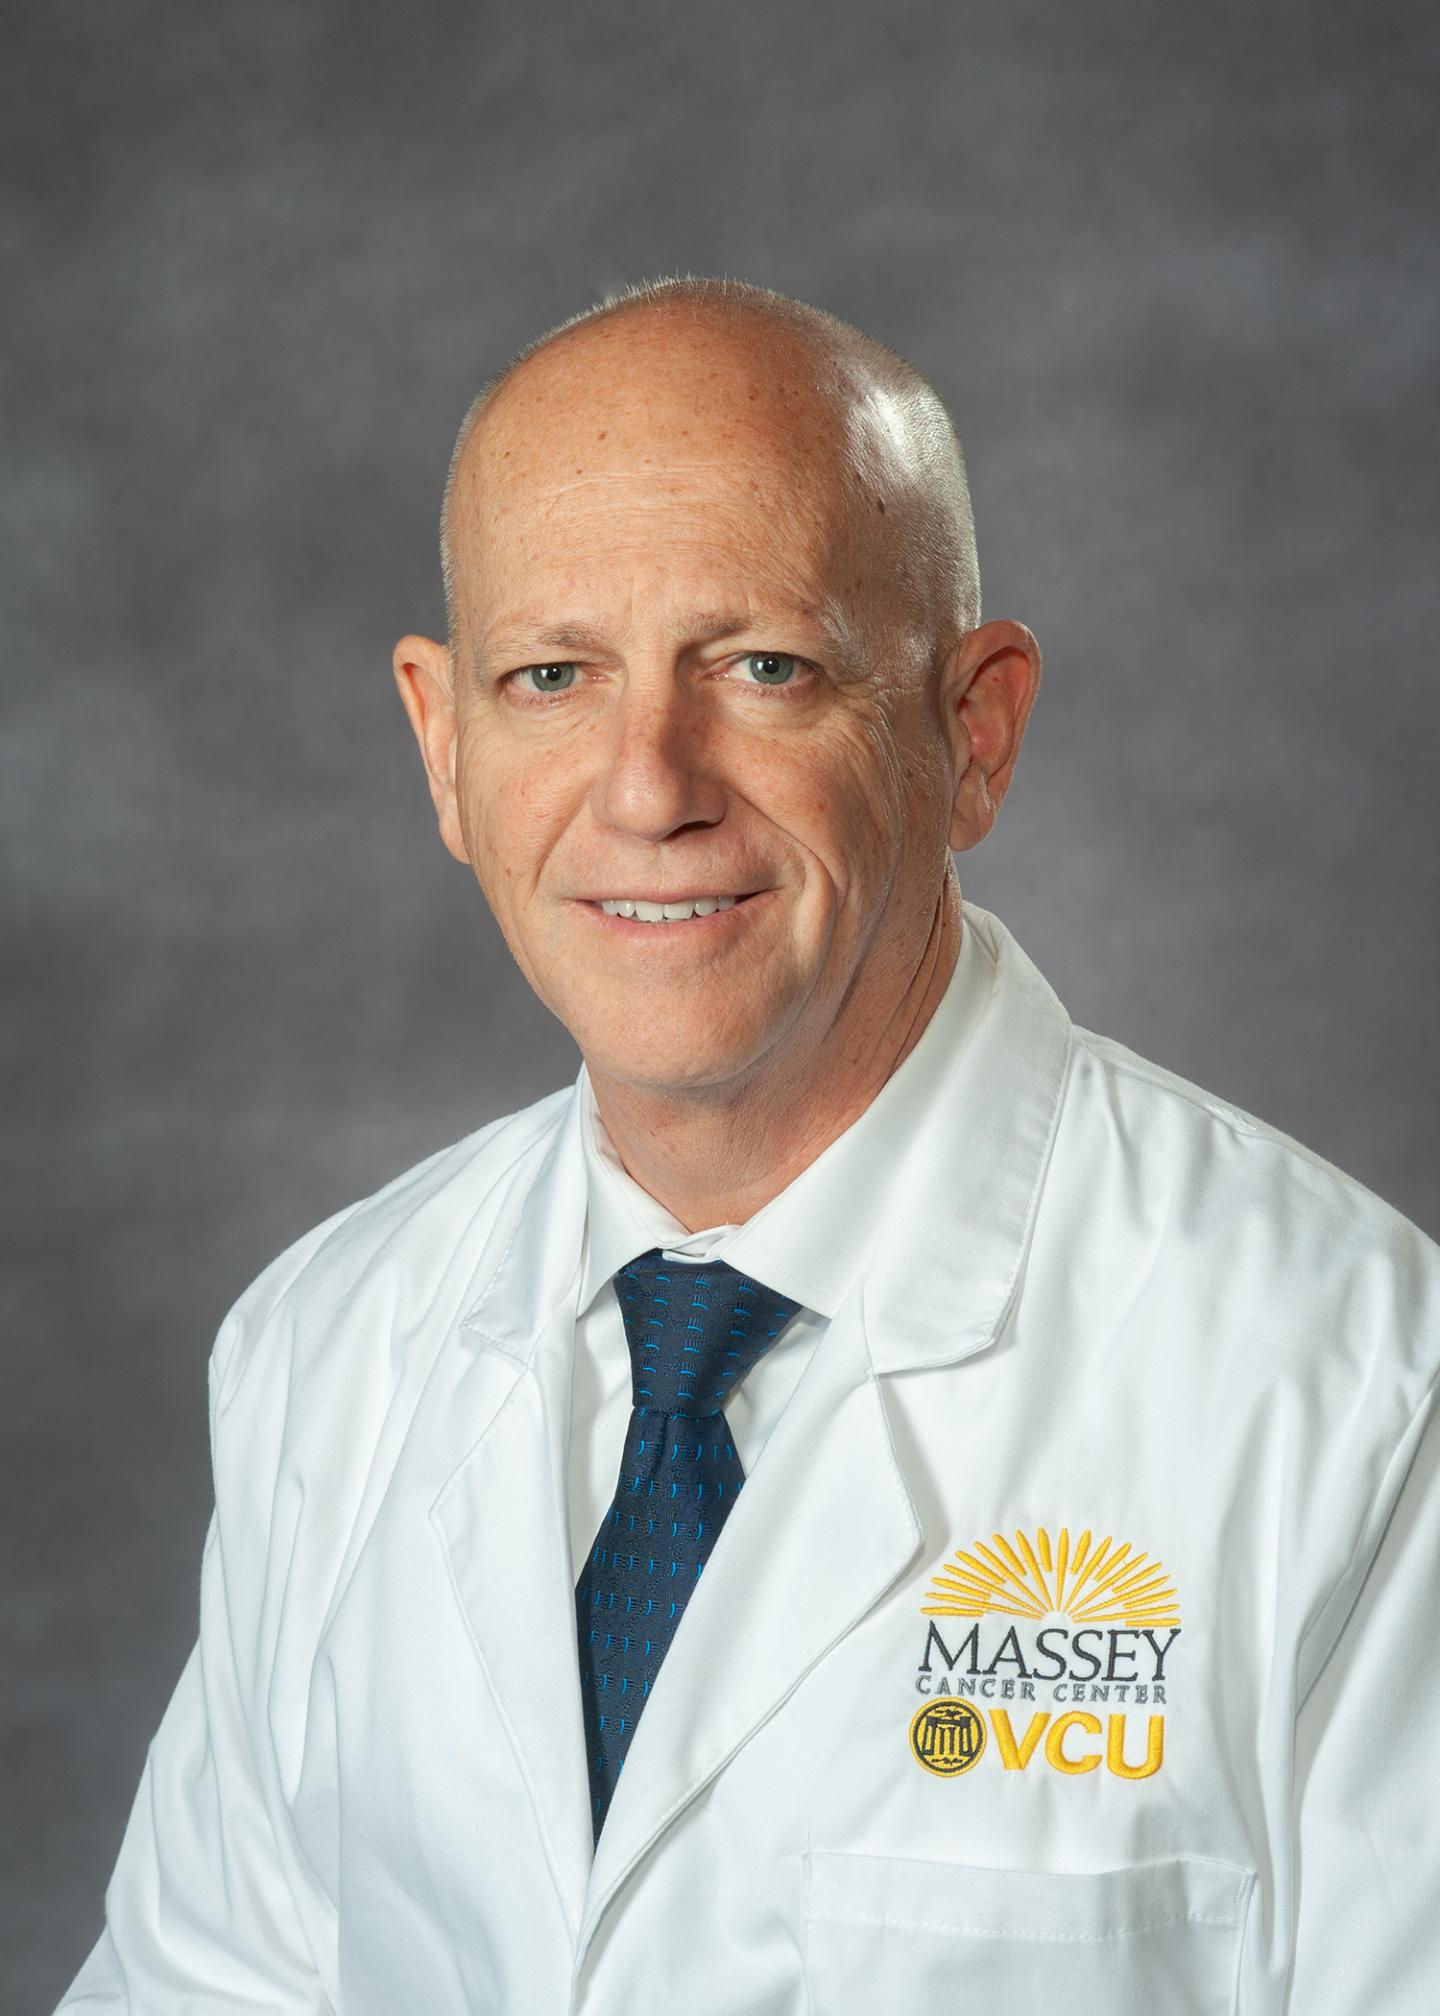 Doug Arthur, MD, Florence and Hyman Meyers Endowed Chair in Radiation Oncology